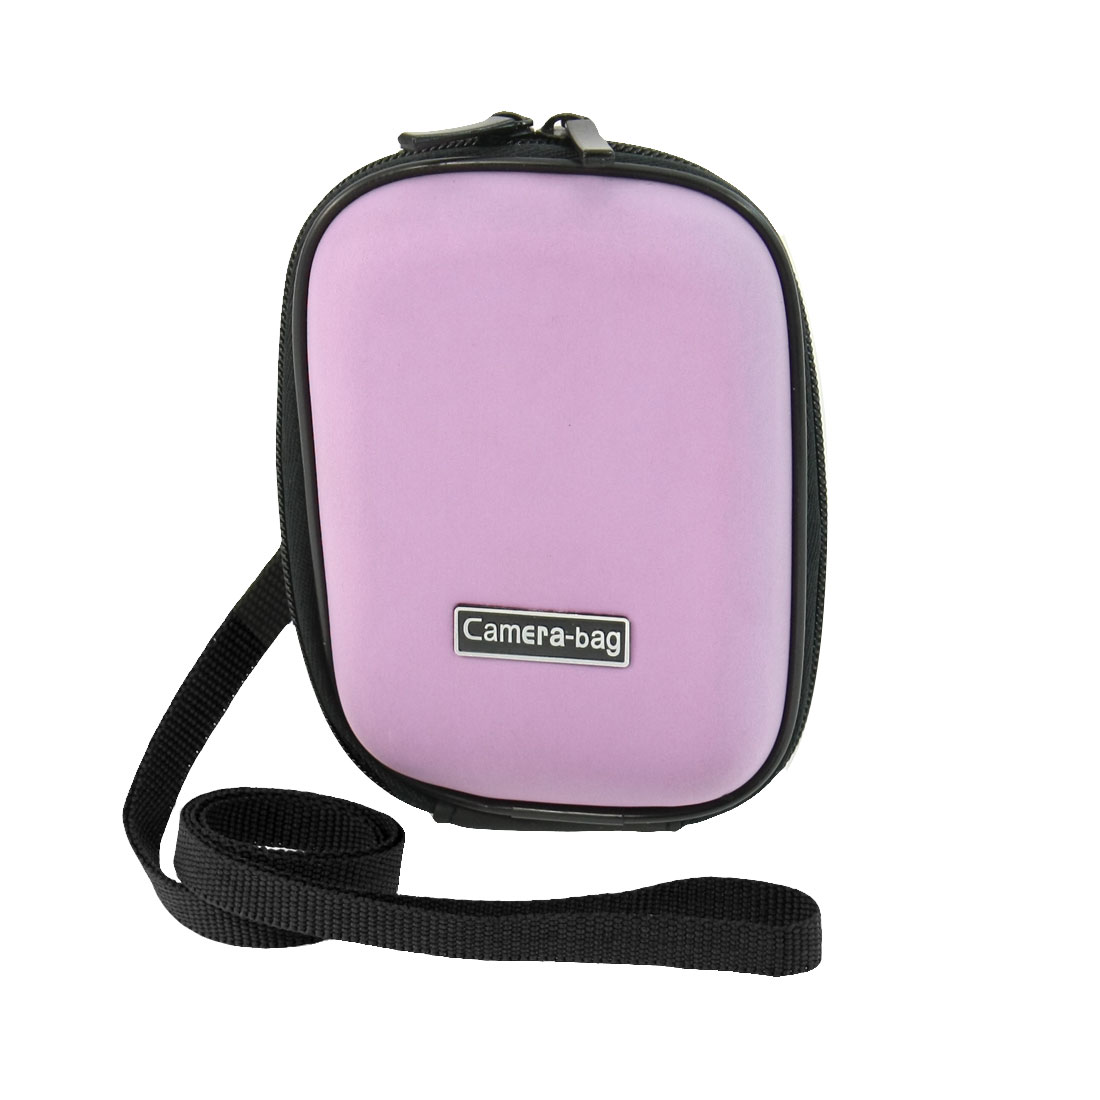 Light Purple Foam Surface Two Way Zippered Sleeve Bag Case for Digital Camera